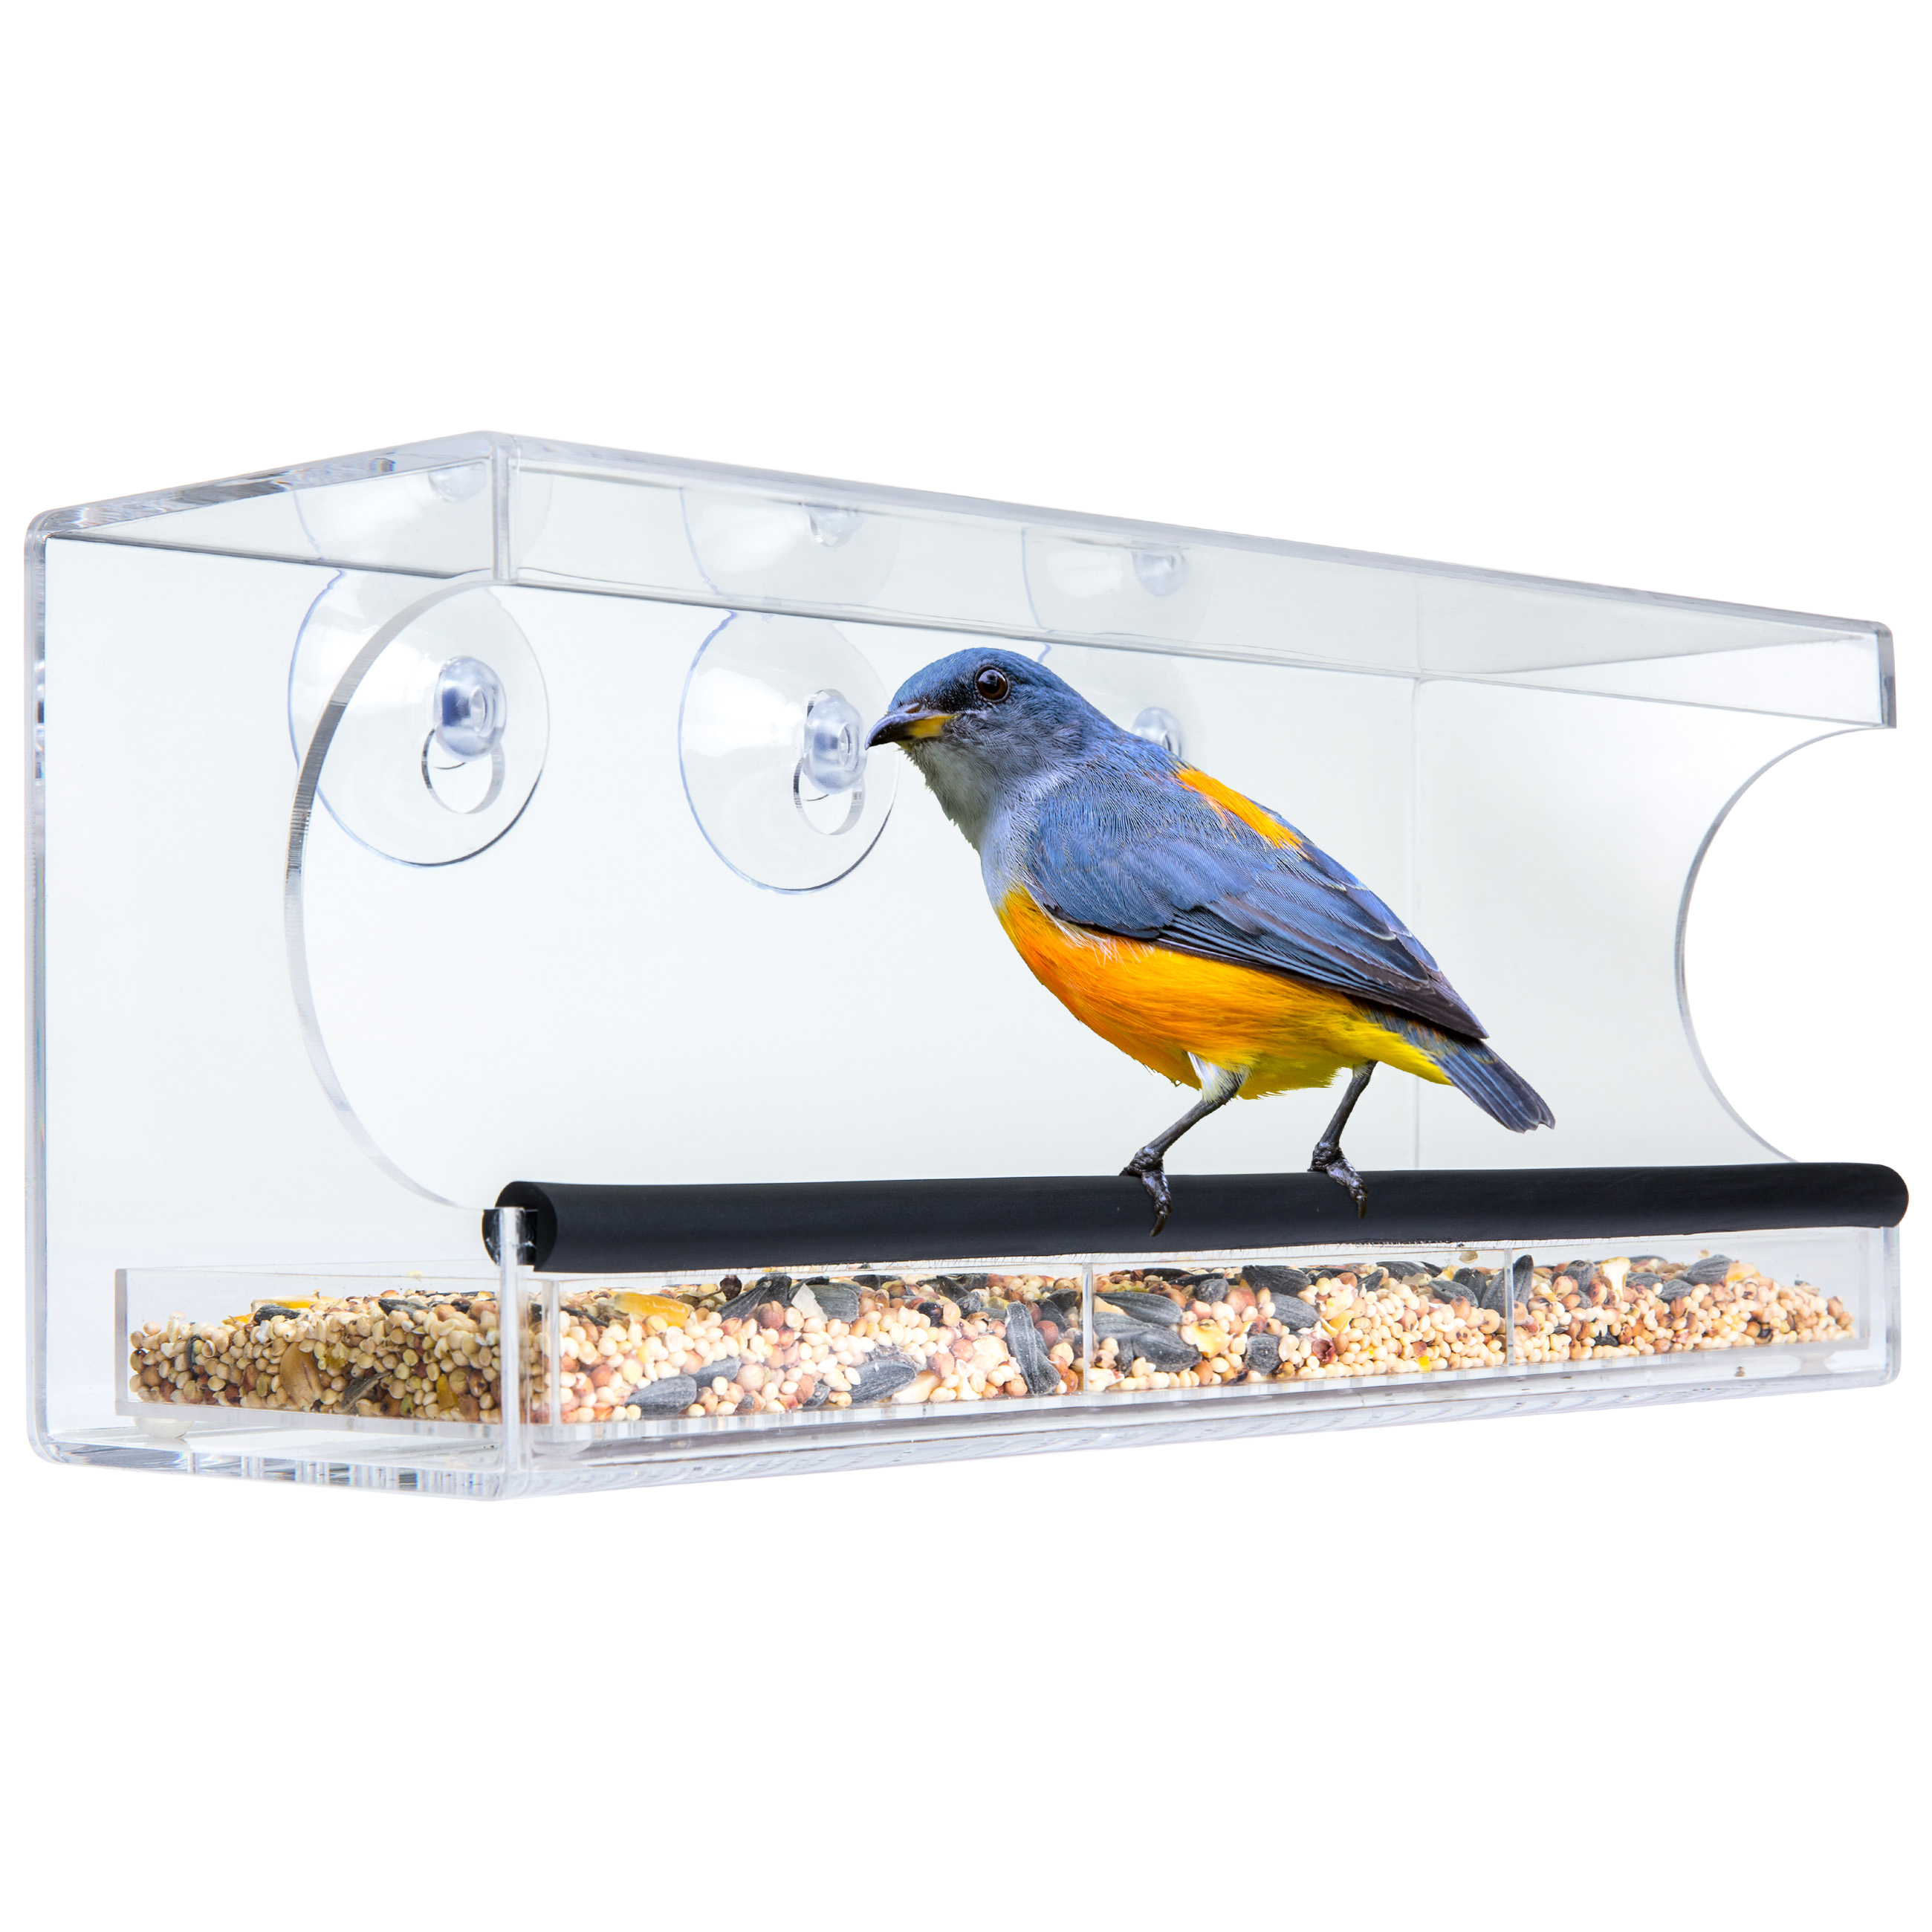 Best Choice Products Extra Wide Acrylic Window Bird Feeder w/ Padded Perch, Drain Holes, & Removable Tray - Clear